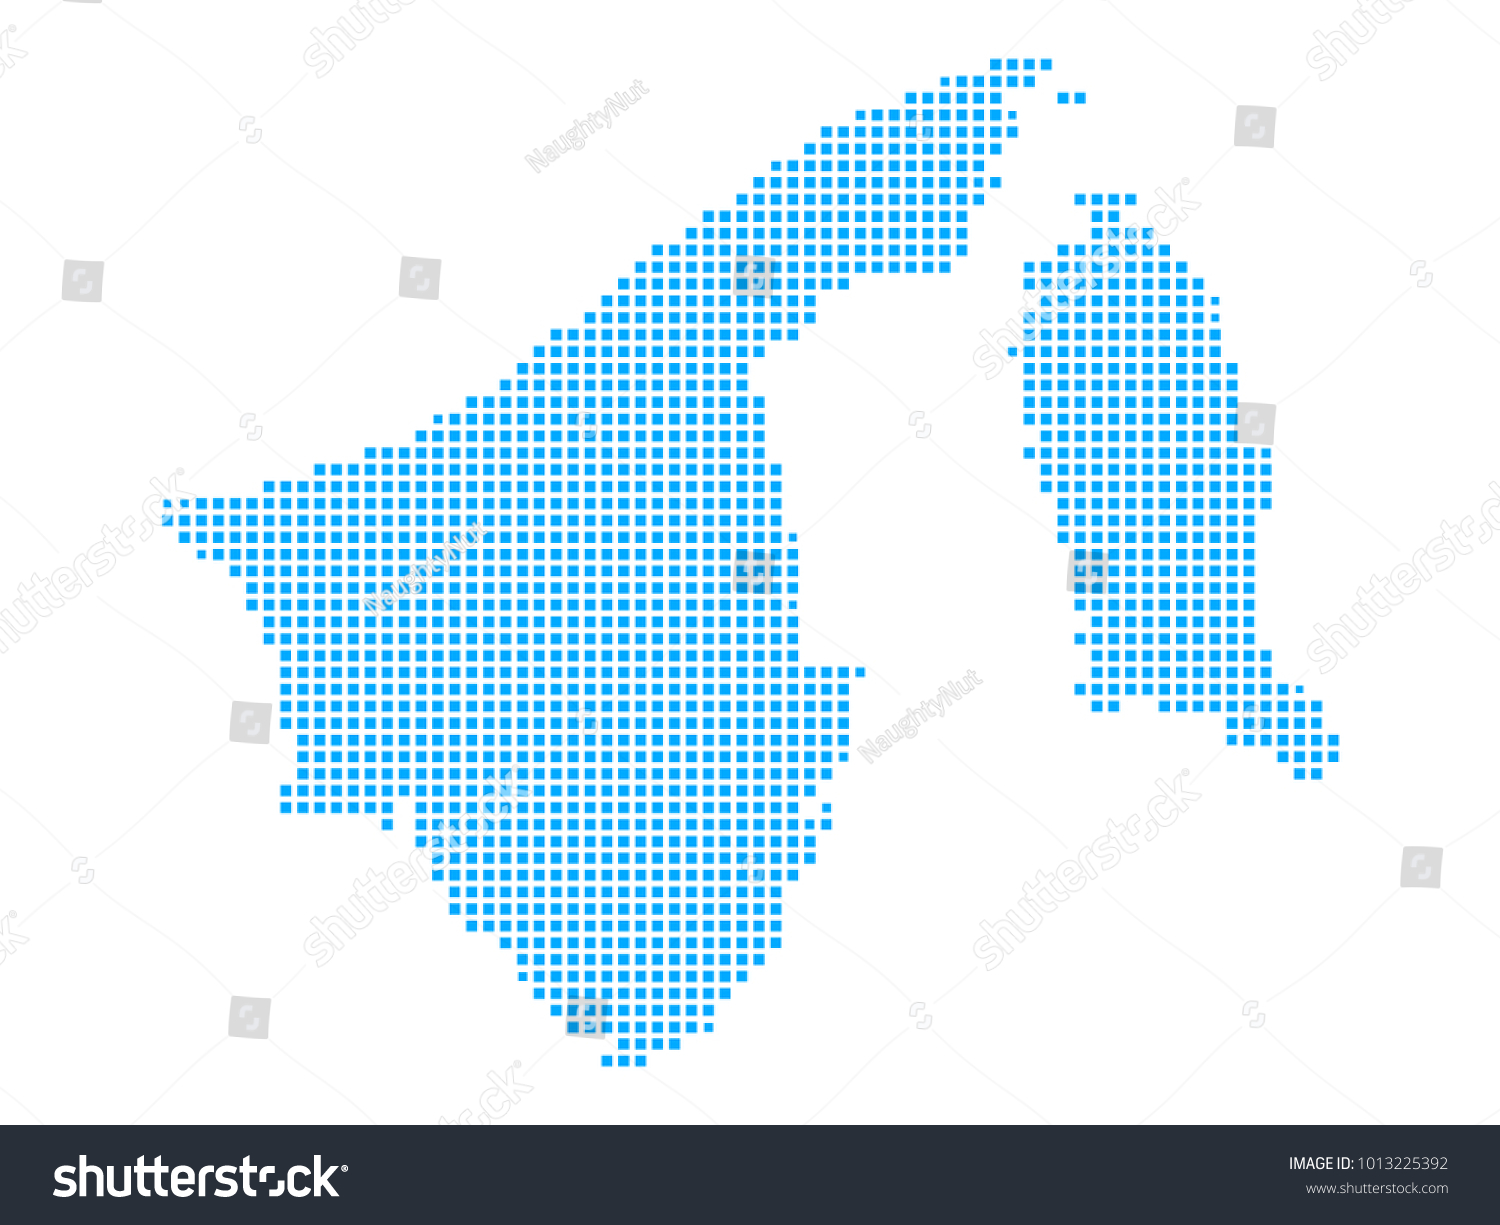 Pixel Dot Map On White Background Stock Vector 2018 1013225392